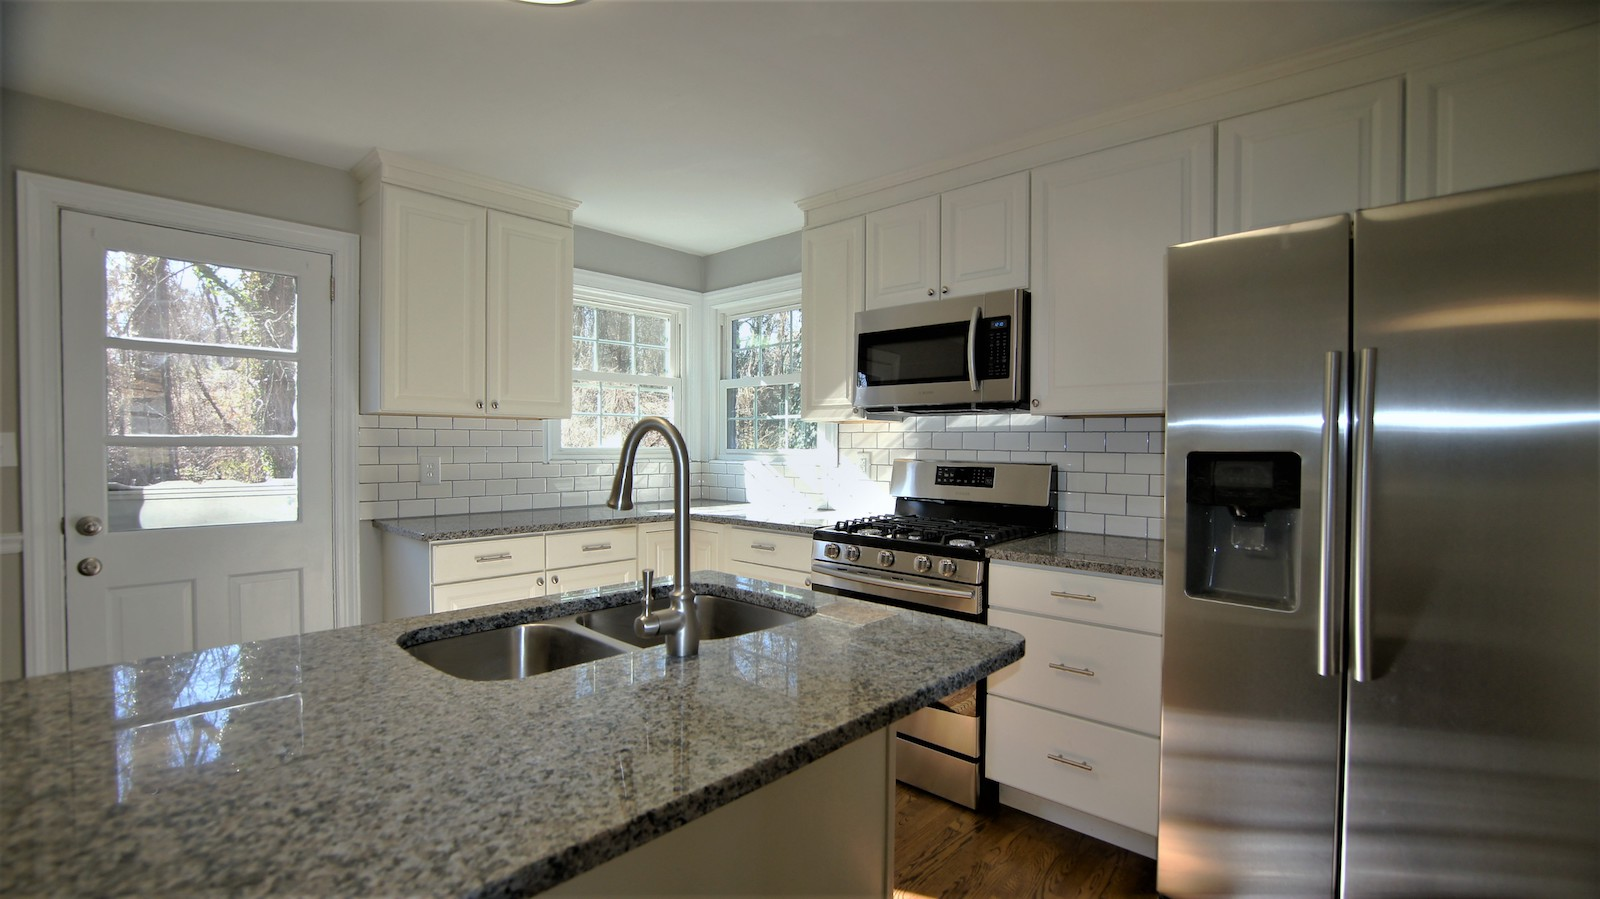 Remodeled kitchen in Ardmore neighborhood